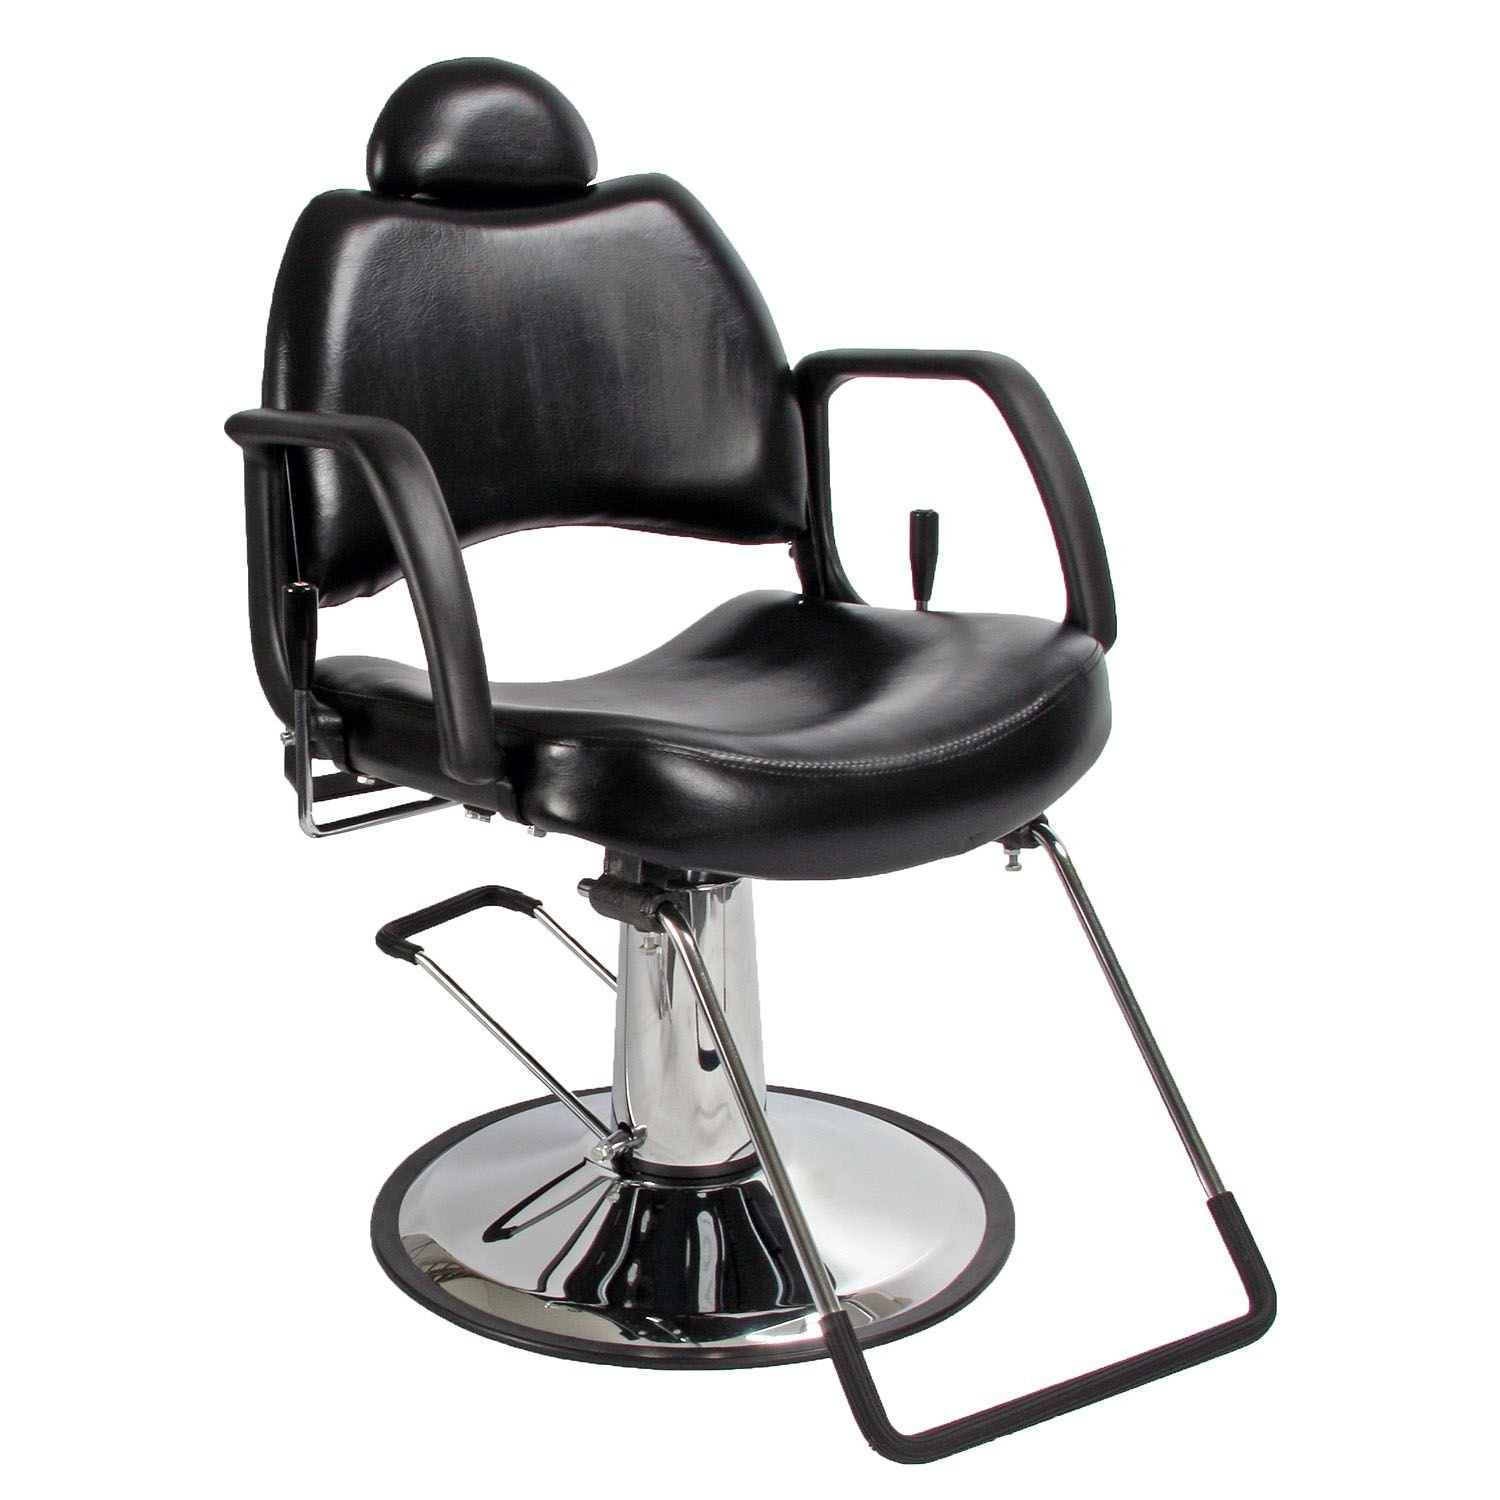 All Purpose Hydraulic Chair Barber Styling Threading Chair The All